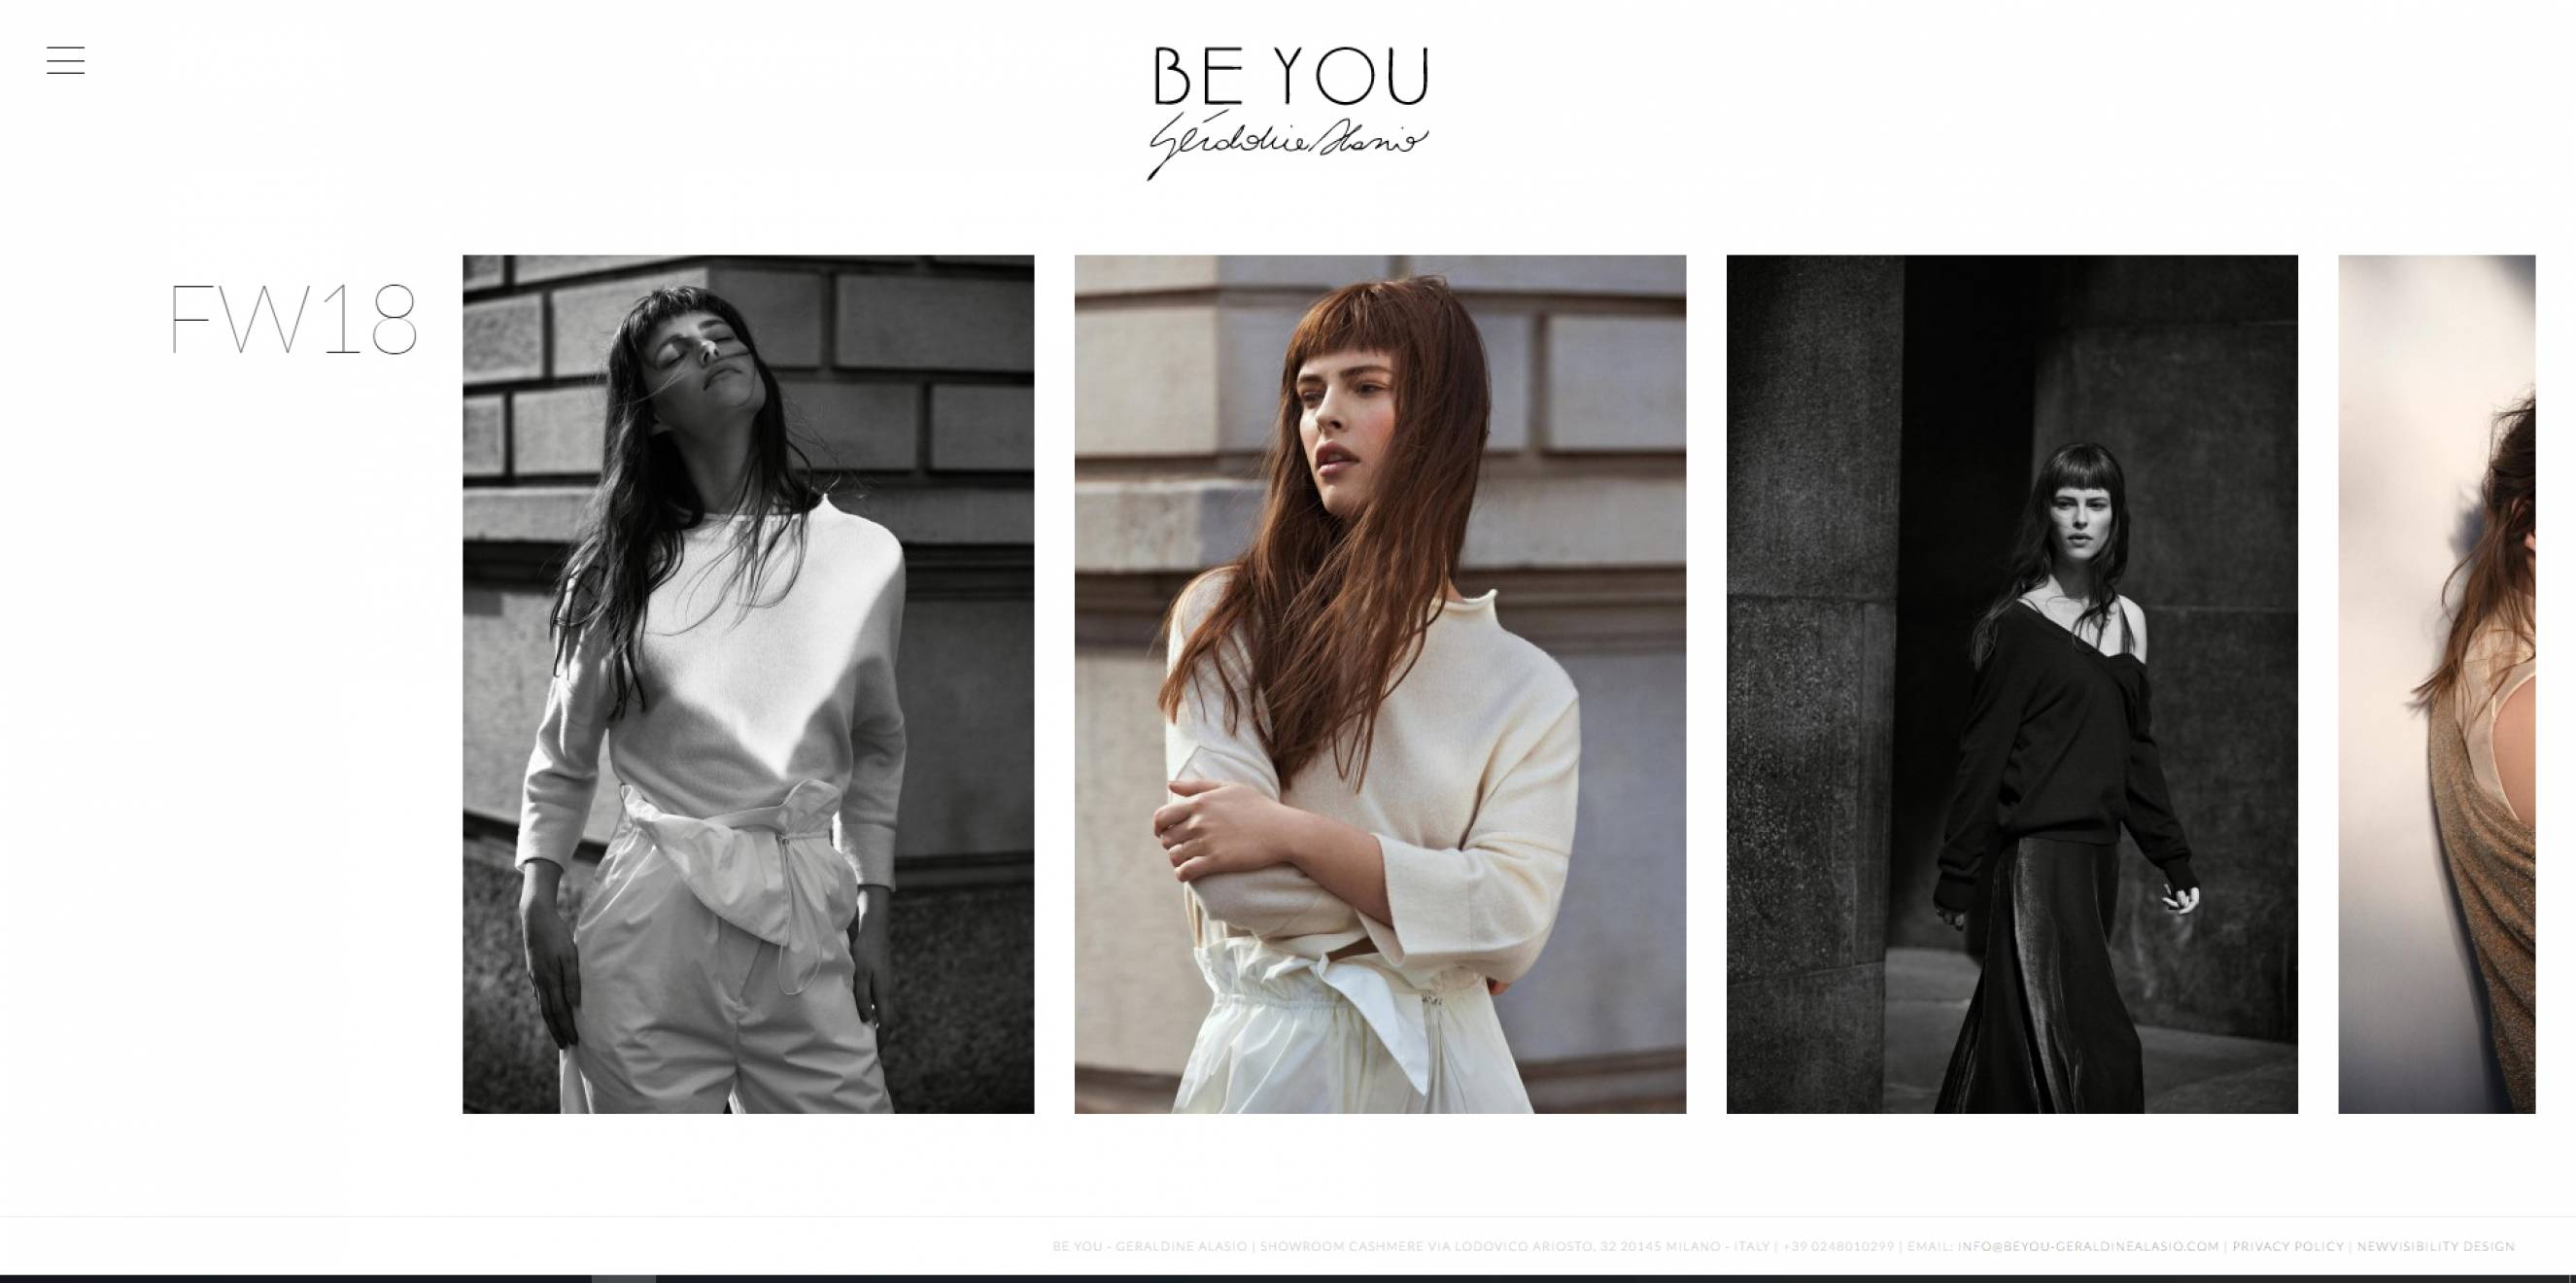 pagina sito be you newvisibility